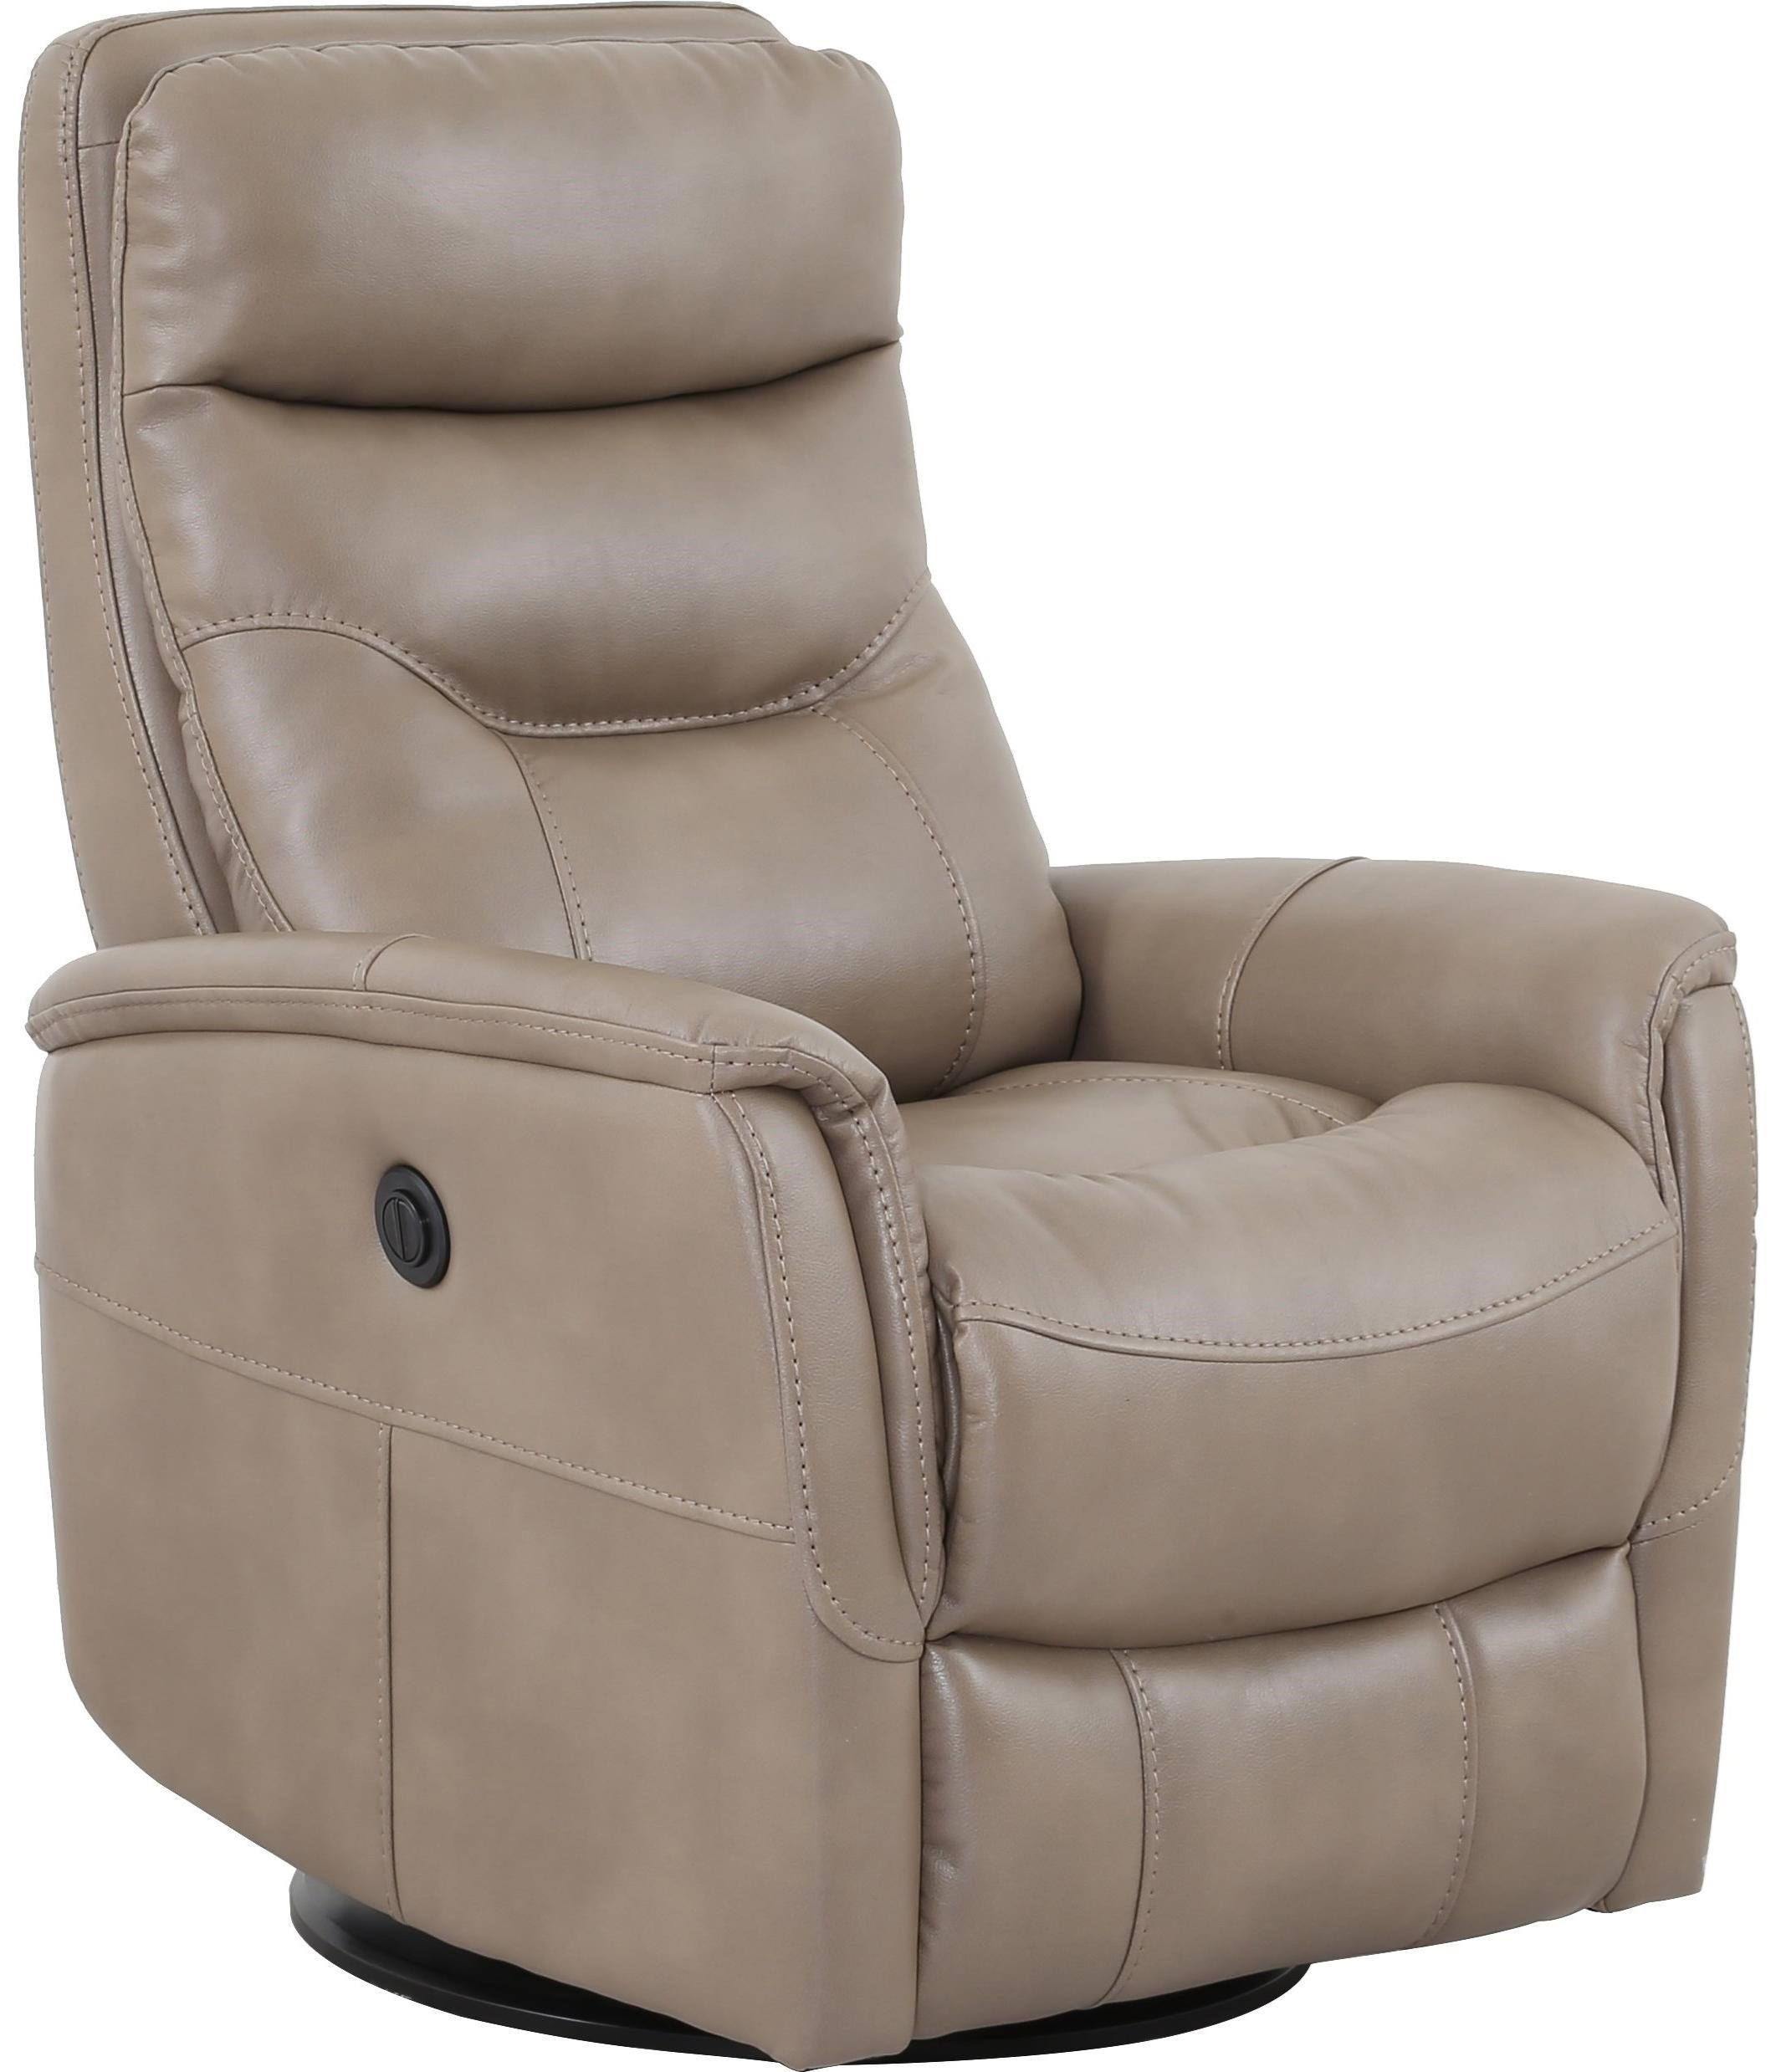 Gemini Swivel Glider Power Recliner by Parker Living at Suburban Furniture